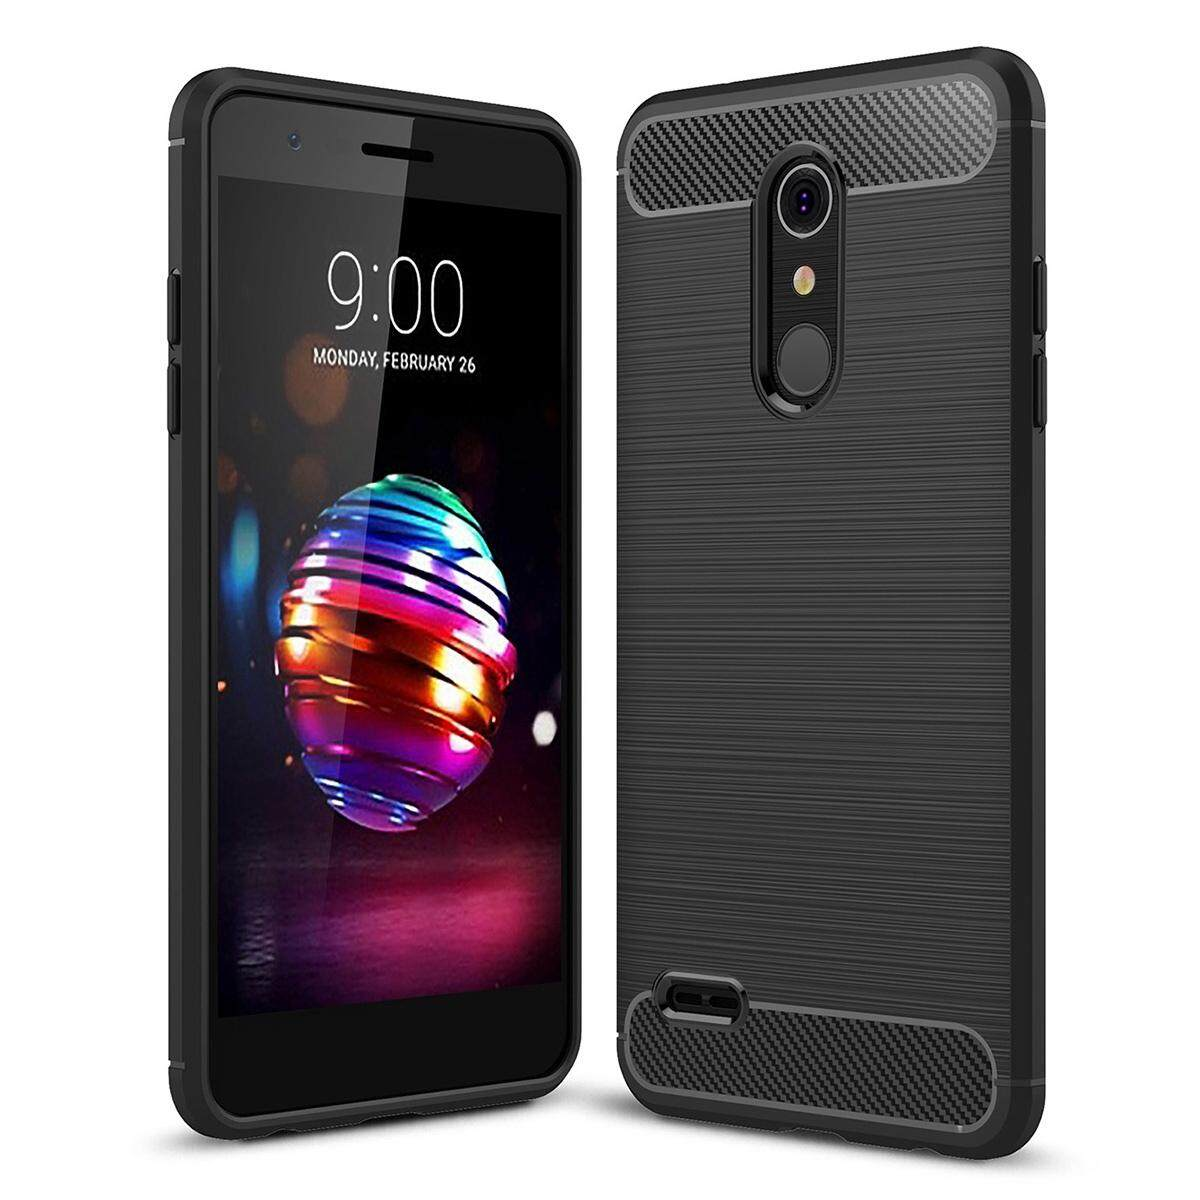 Mooncase for LG K10 2018 Case Carbon Fiber Resilient Drop Protection Anti-Scratch Rugged Armor Case Cover - intl